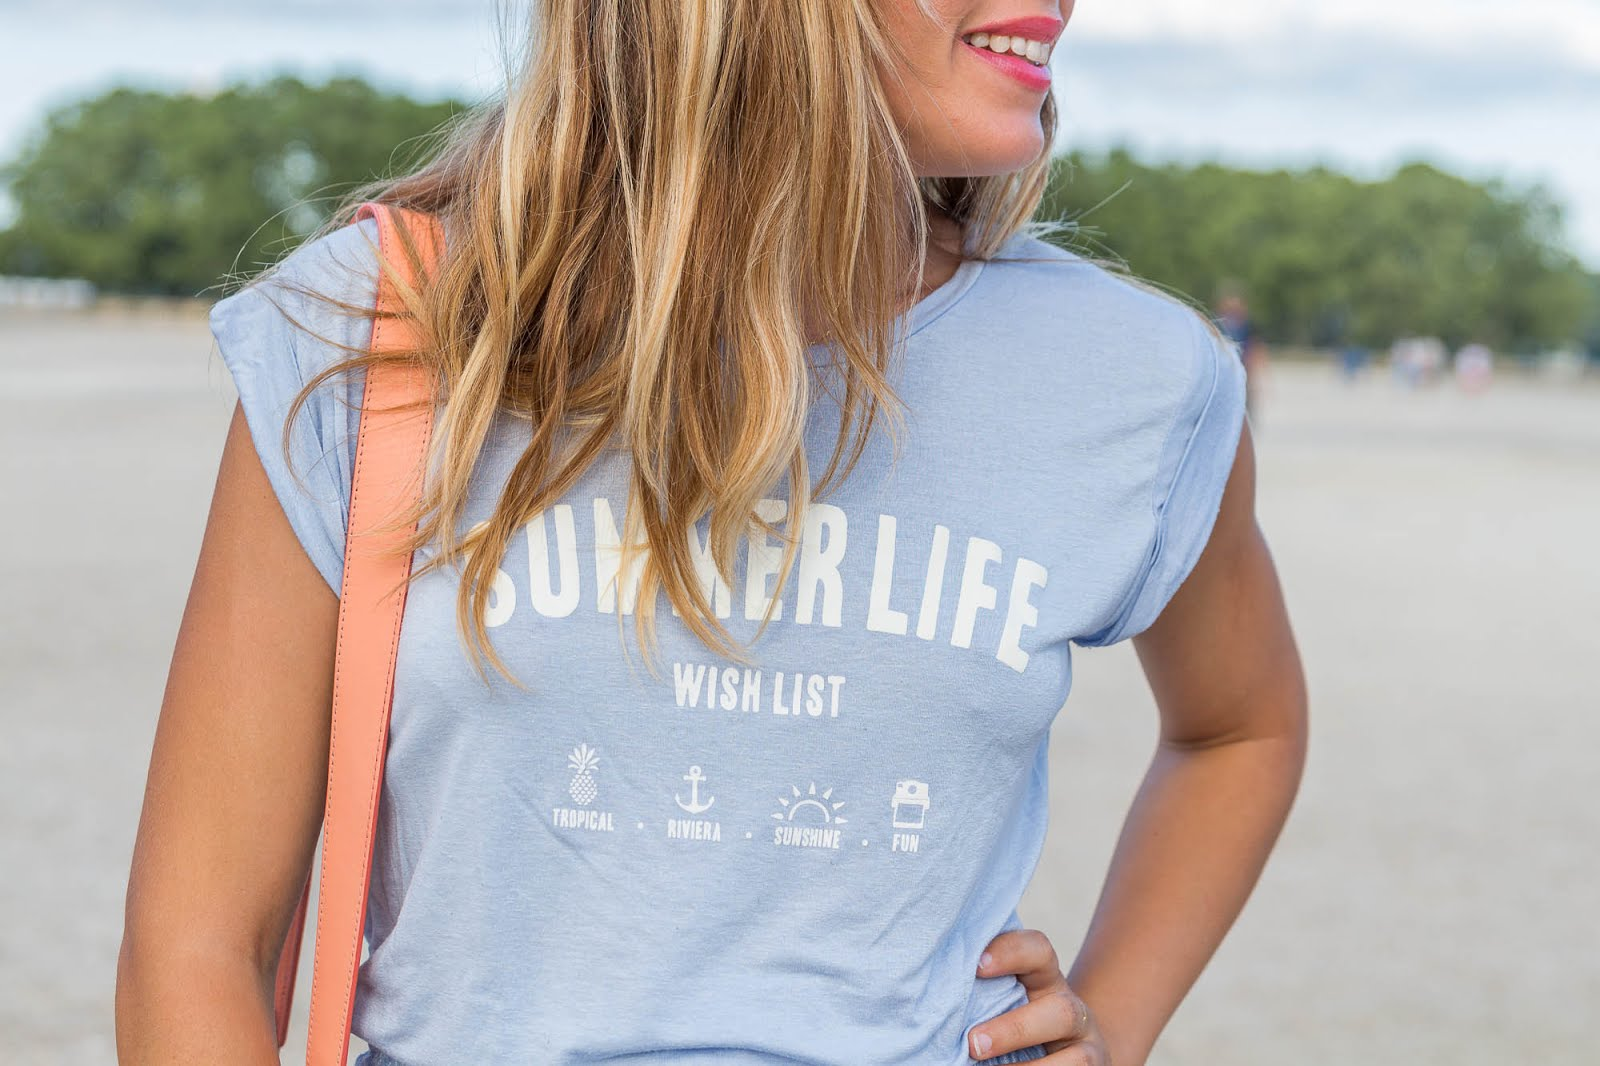 summer life t-shirt pepe jeans